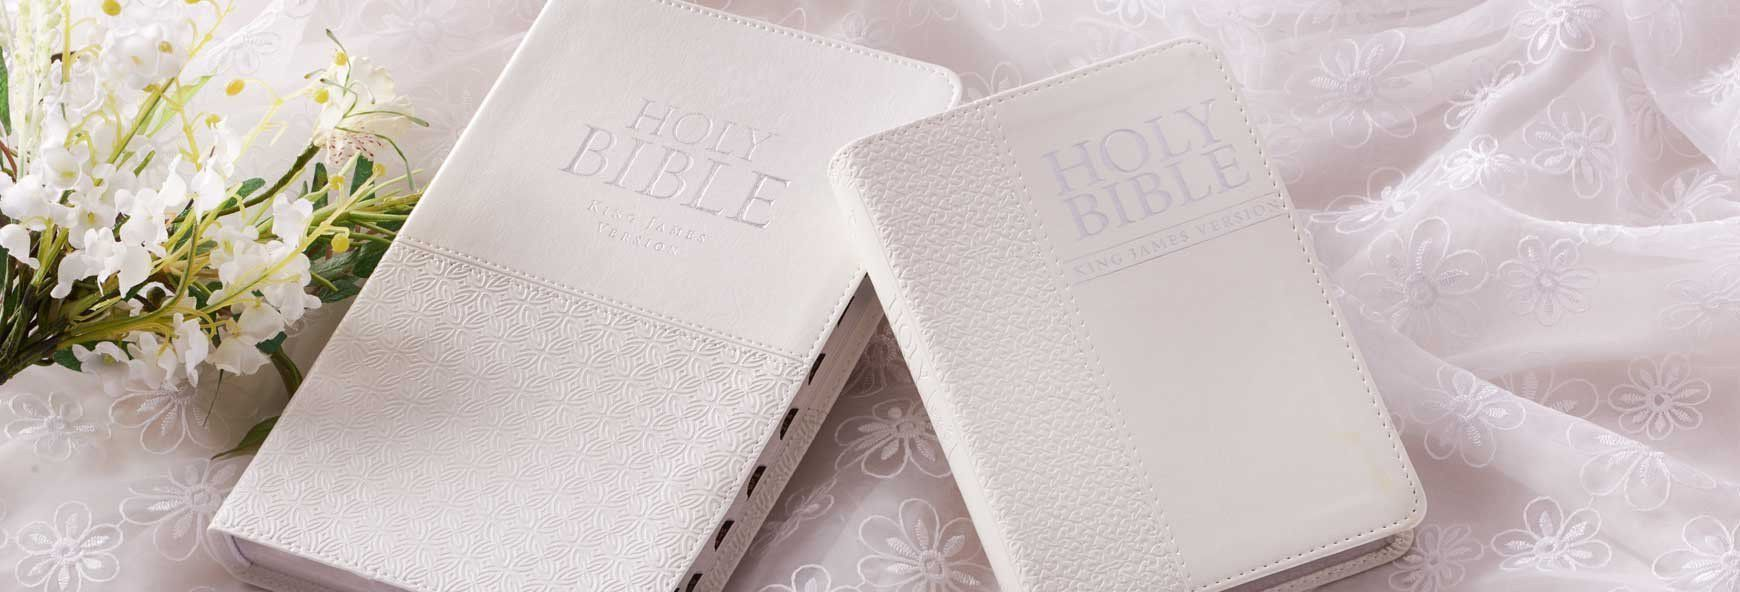 Wedding Gifts Wedding Presents Unique Wedding Gifts Kjv Bibles